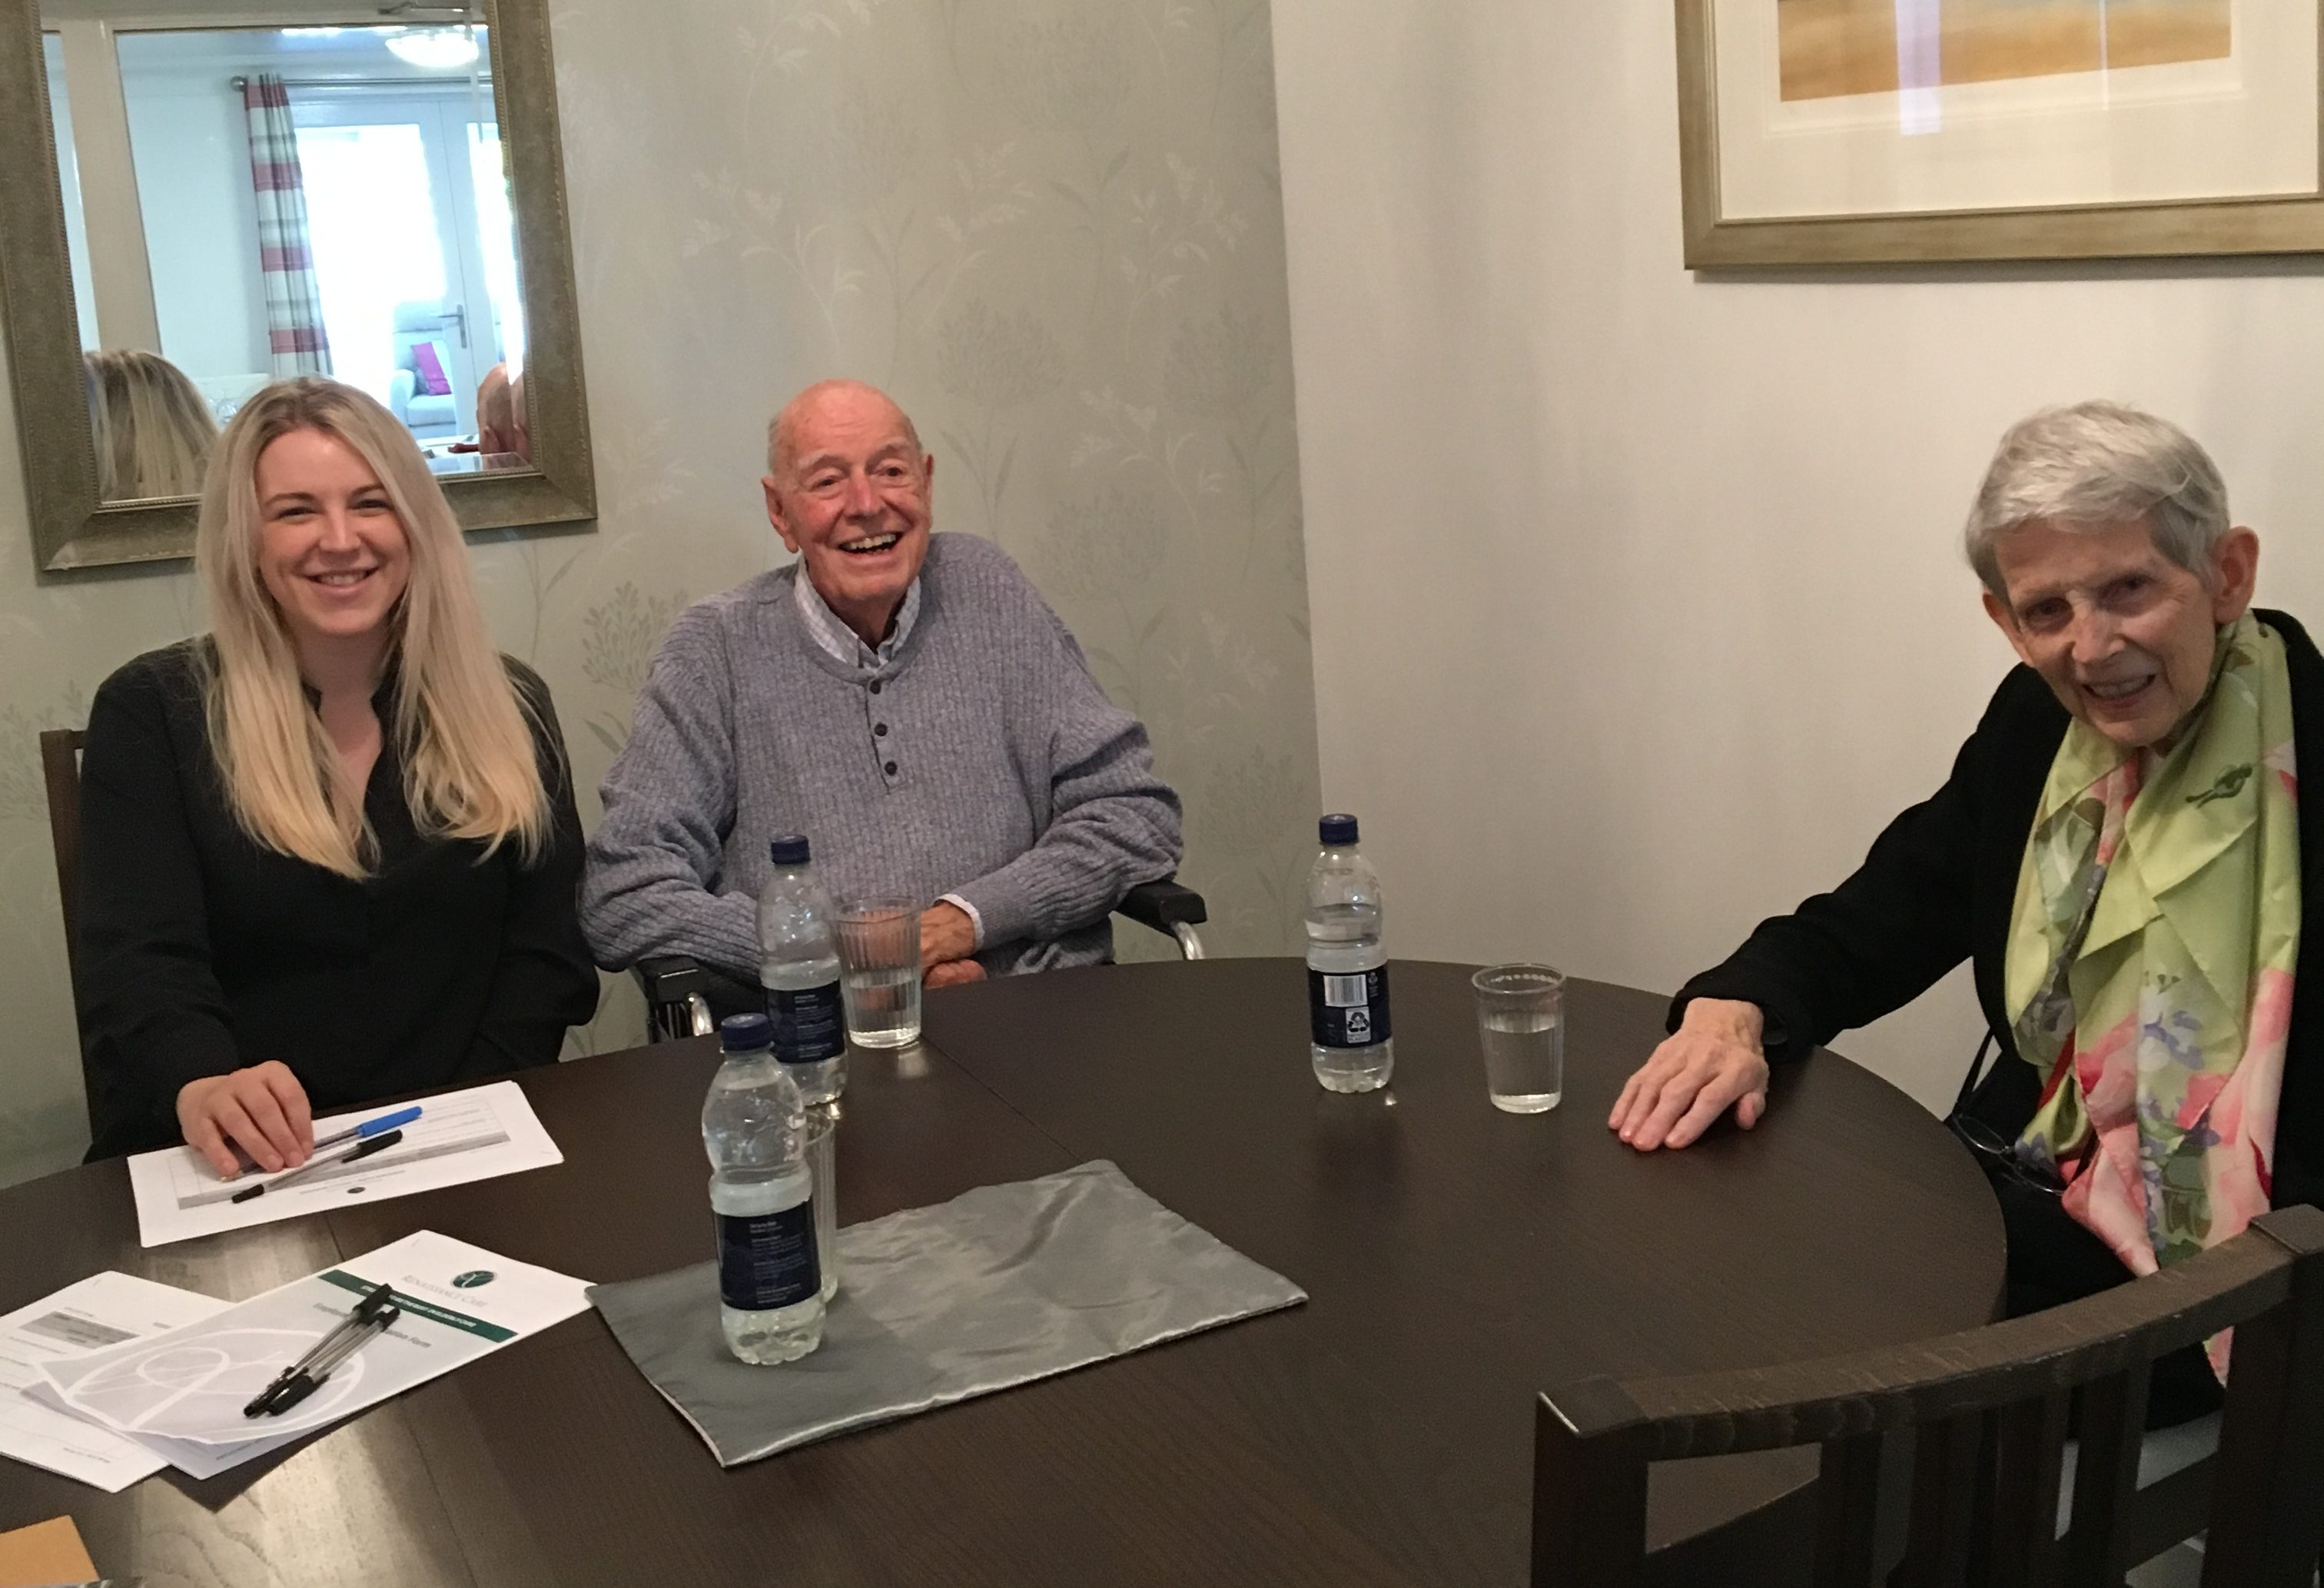 Home manager Jozi Stabes with residents Ian Arnott and Norma Christie